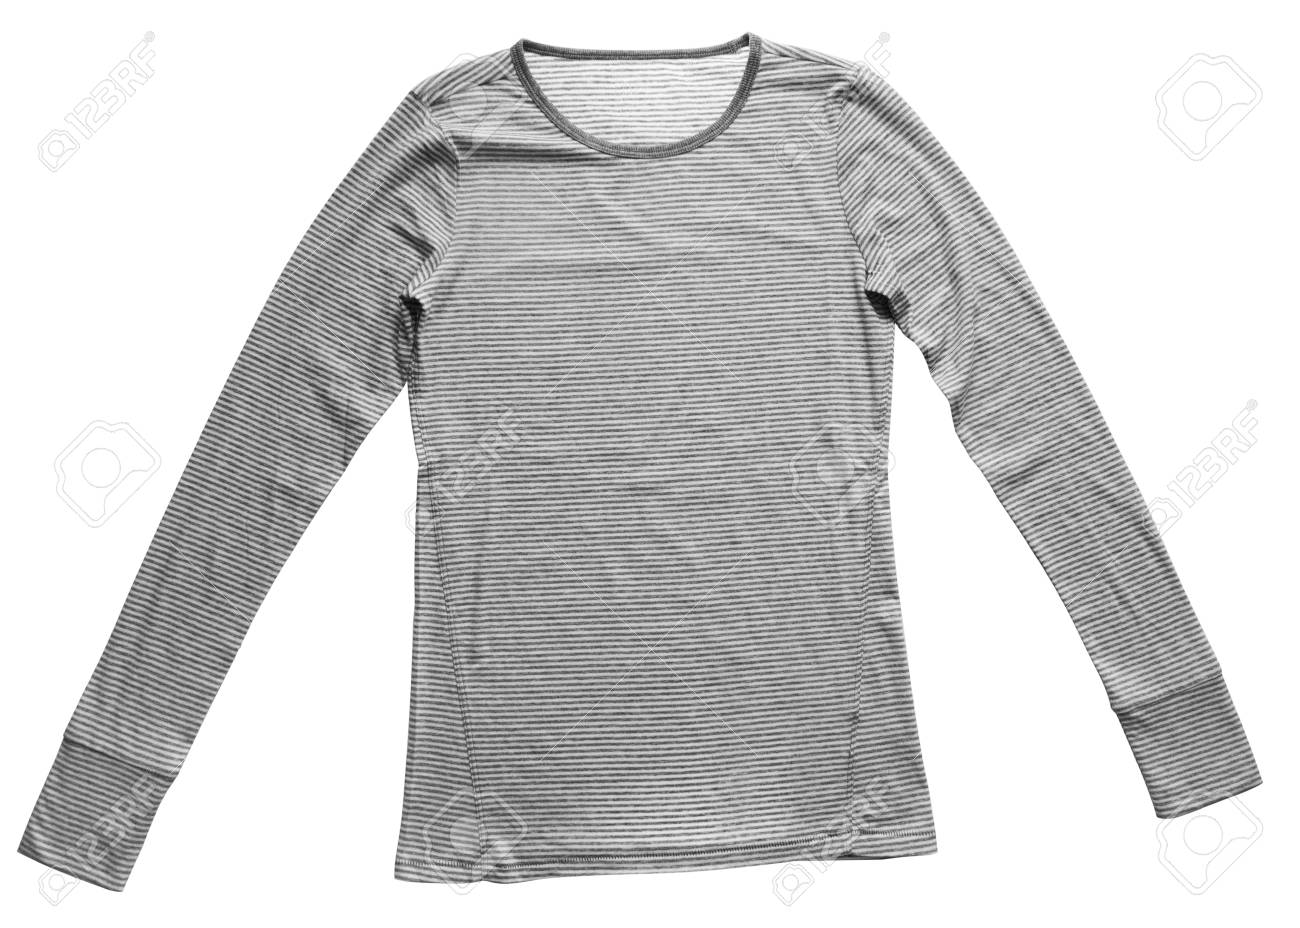 8ce9413d Stock Photo - Striped grey female blouse t-shirt isolated on white  background.